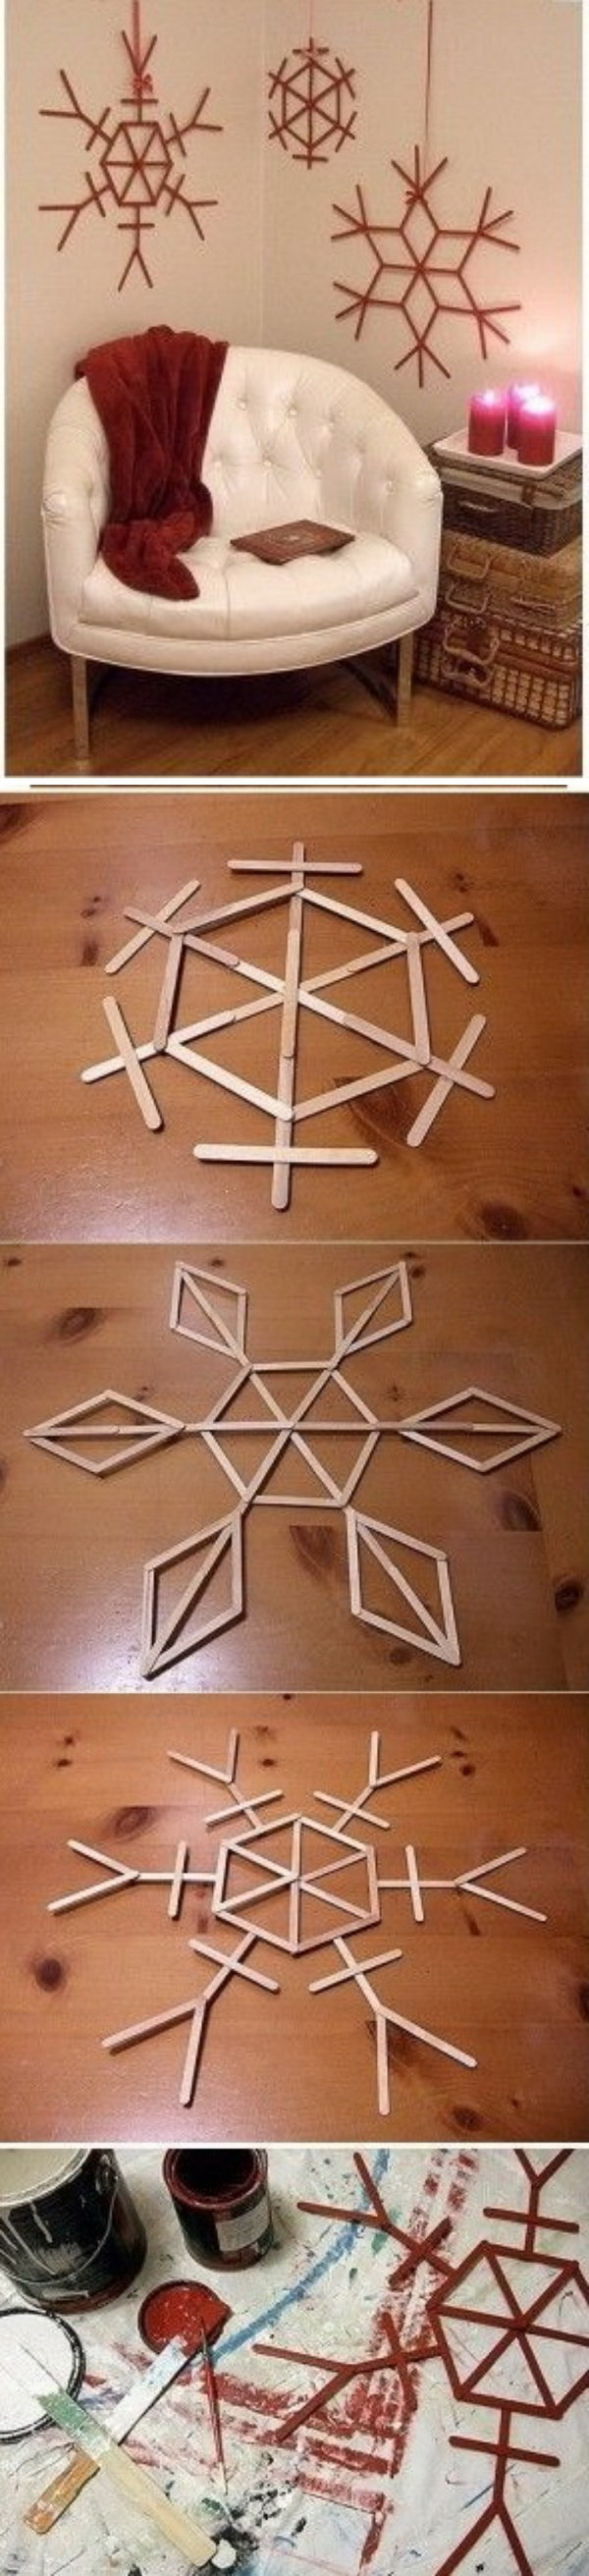 Giant Popsicle Stick Snowflakes. These festive snowflakes are fun, easy, and so inexpensive to make. Great to use to decorate your wall for Christmas!